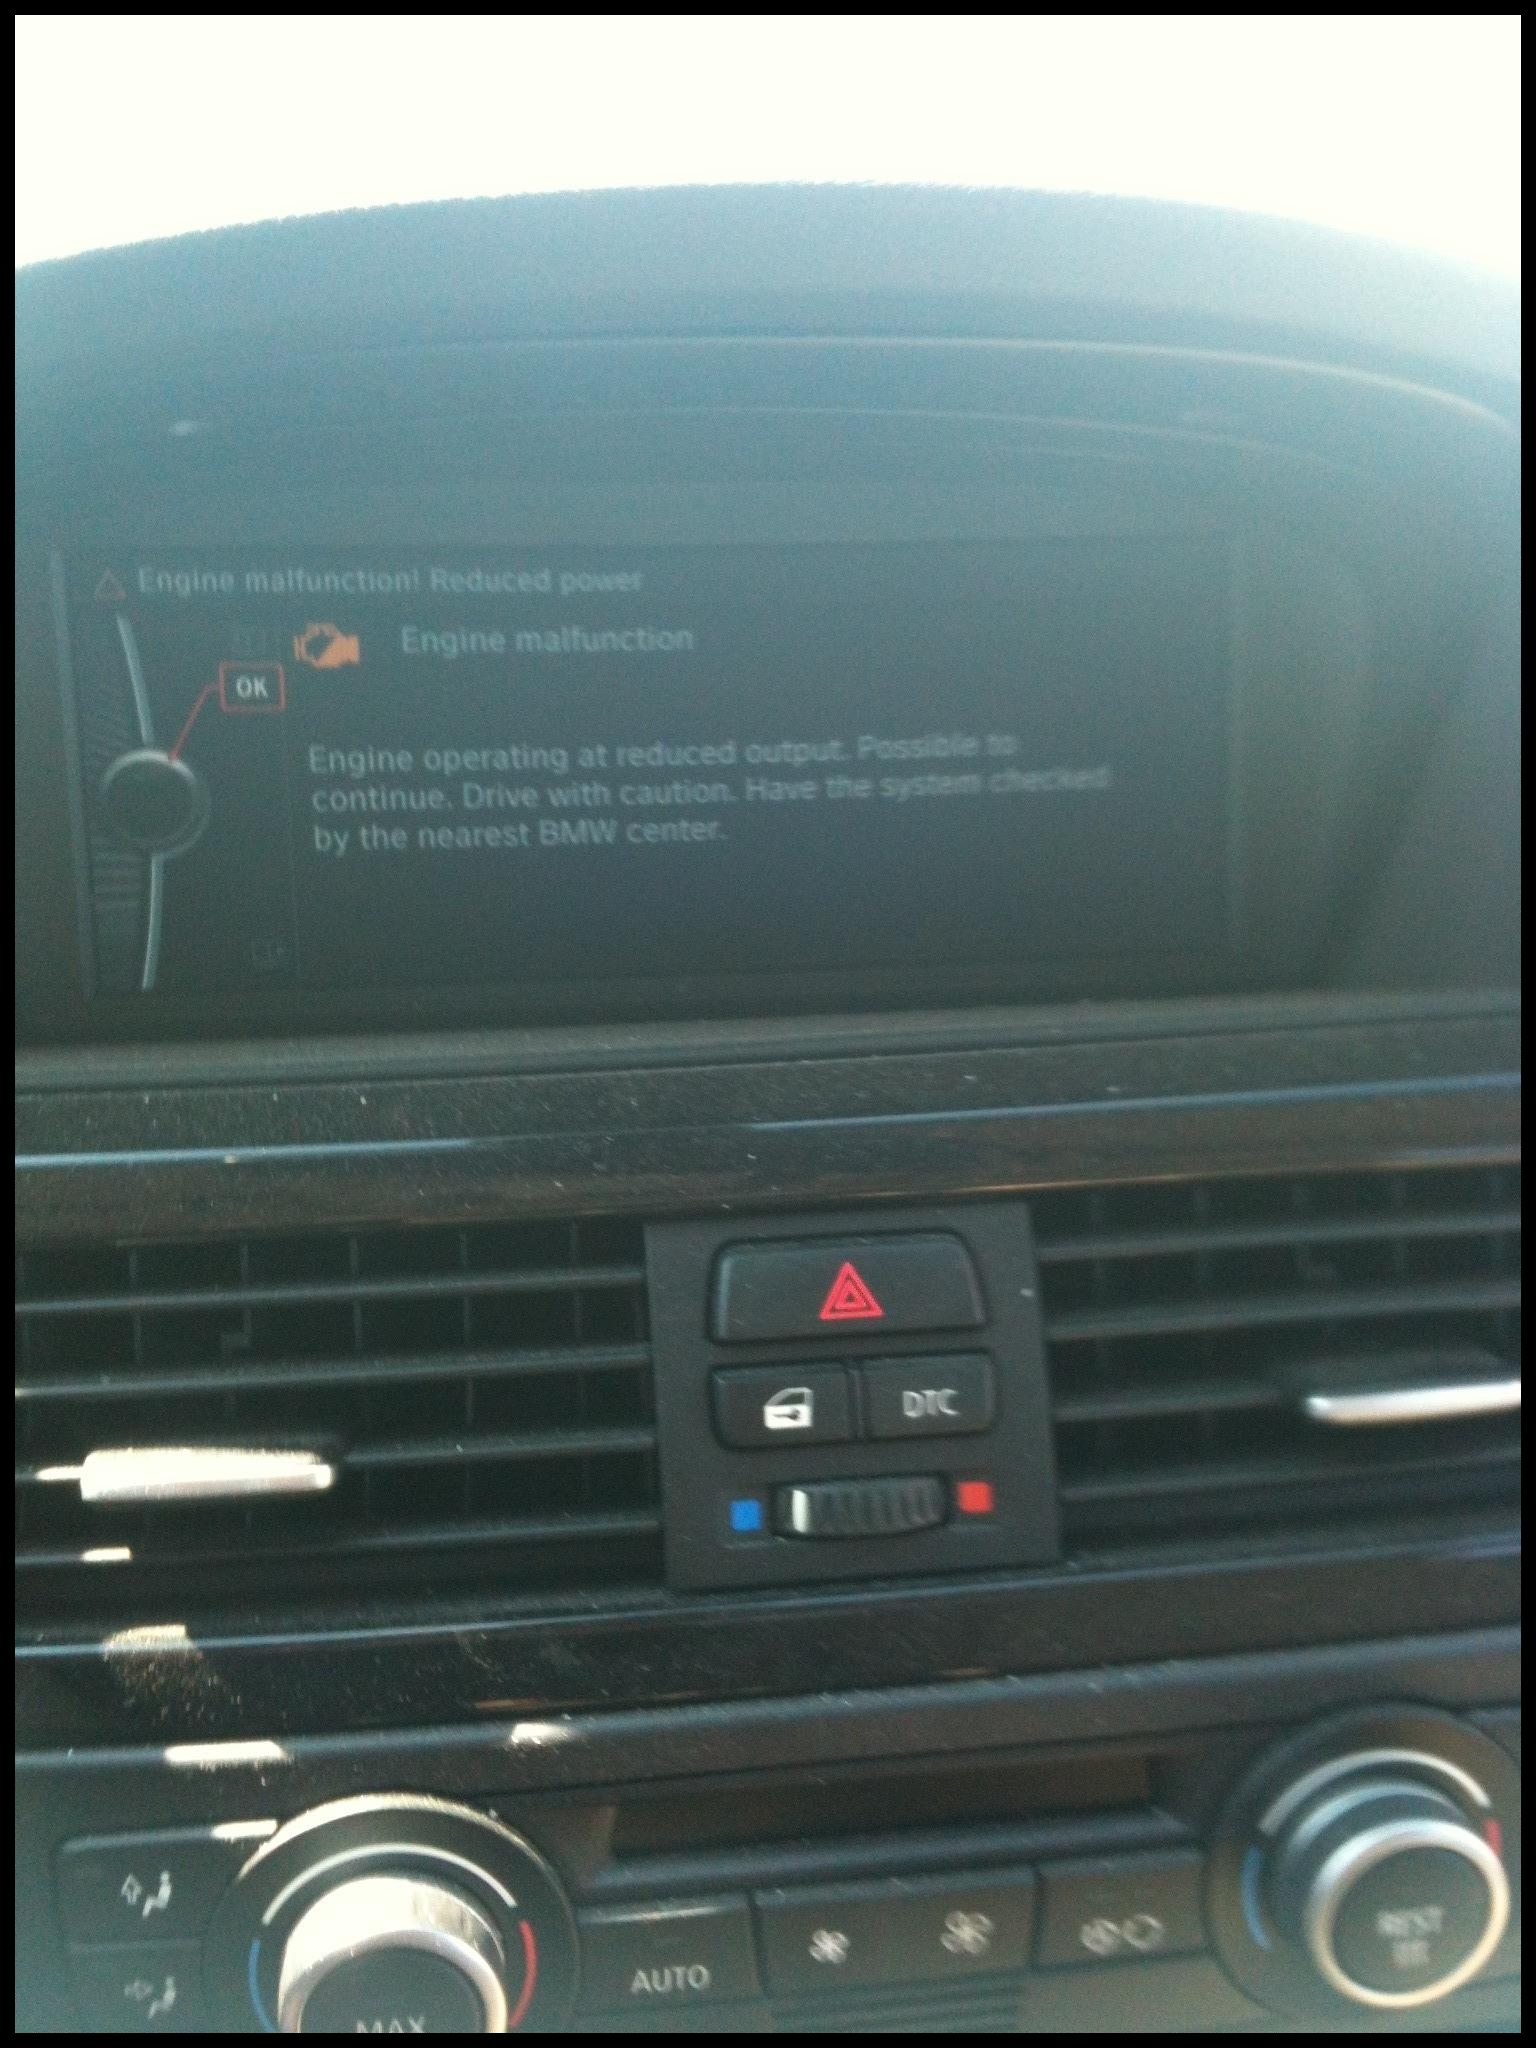 """Just got this as I was driving and told """"reduced power drive to BMW center """" Sorry for the crappy pic as I was driving when I took it"""